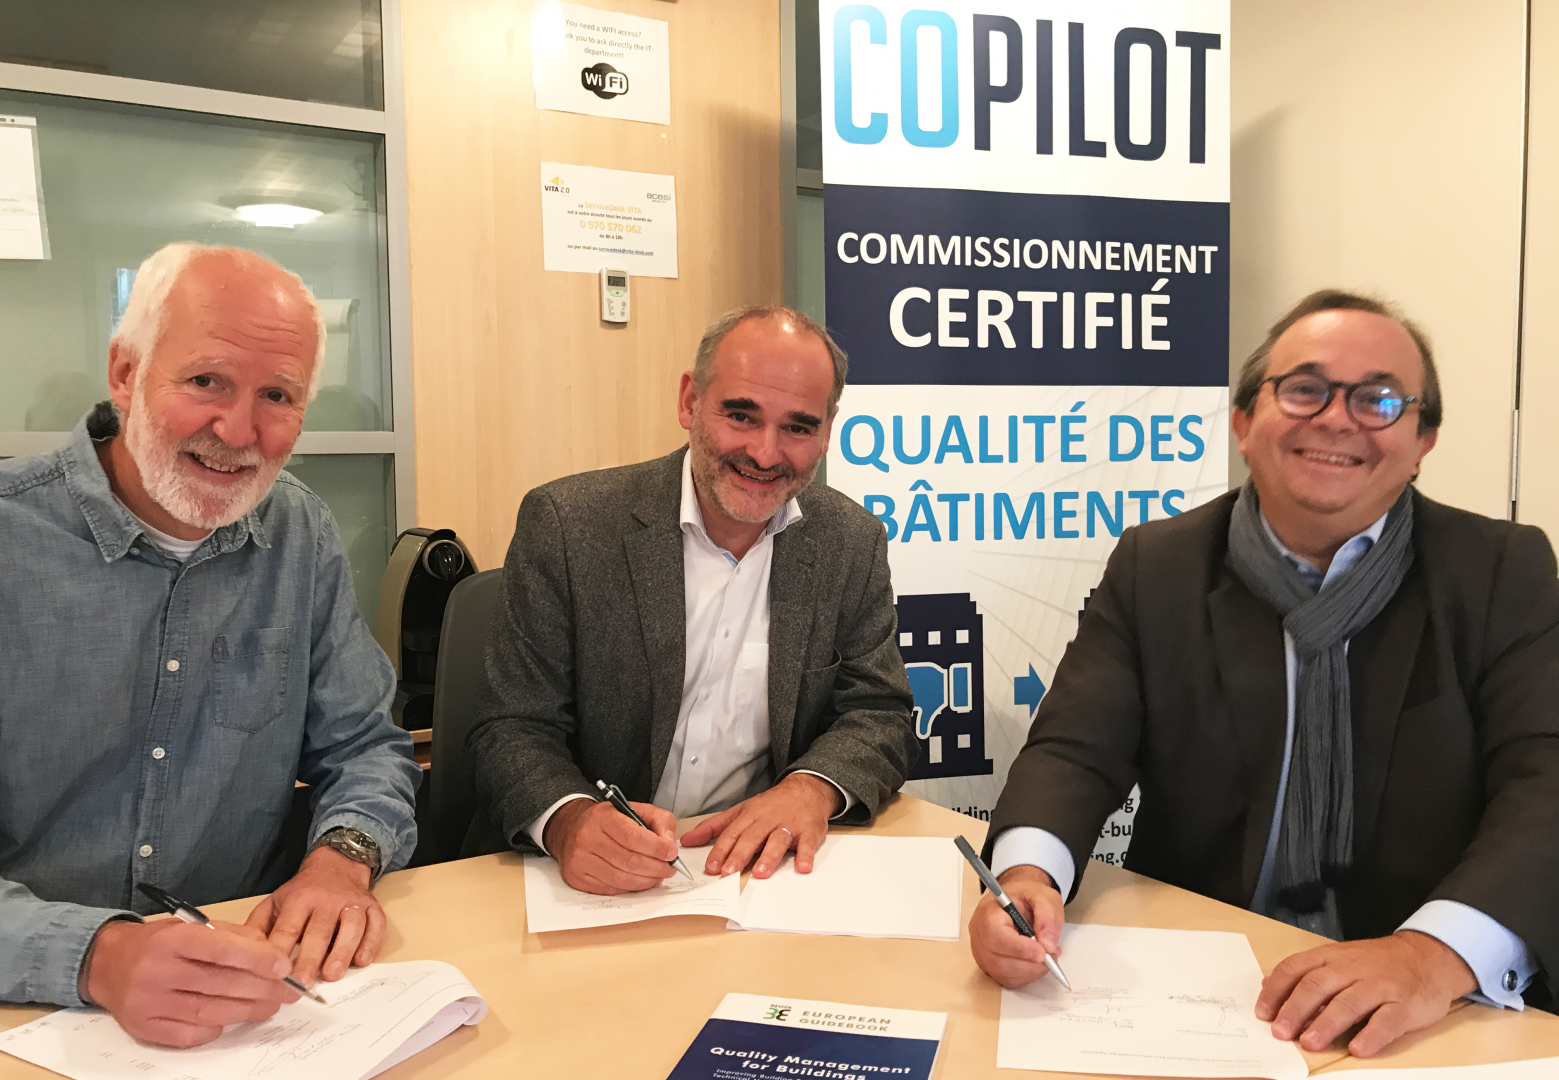 2019 - COPILOT Certificate becomes new standard for building performance